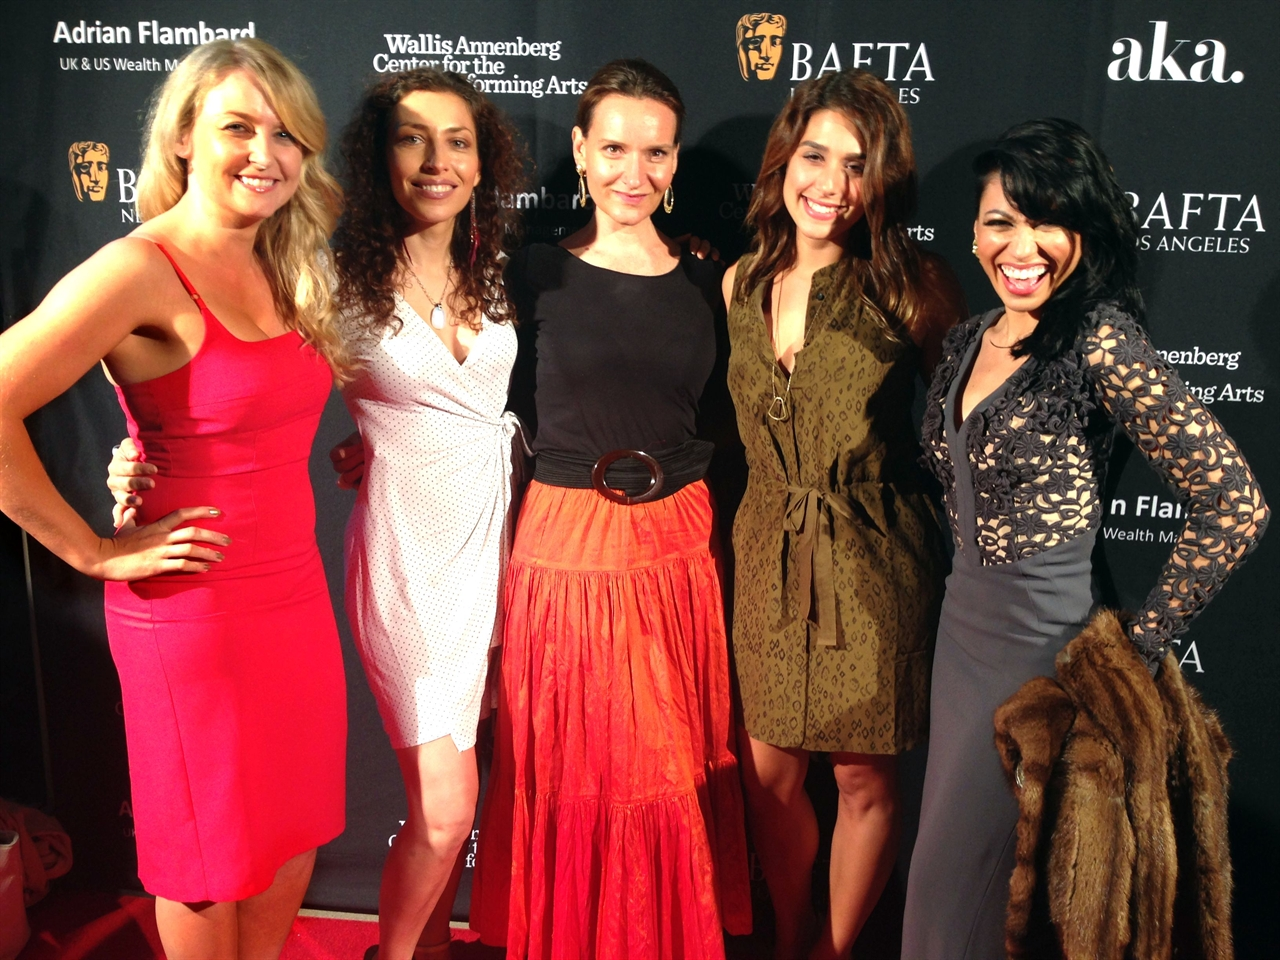 Janine with Sandra De Sousa and Vanessa Born - Ray Donovan (far left) at BAFTA Film Awards 2015